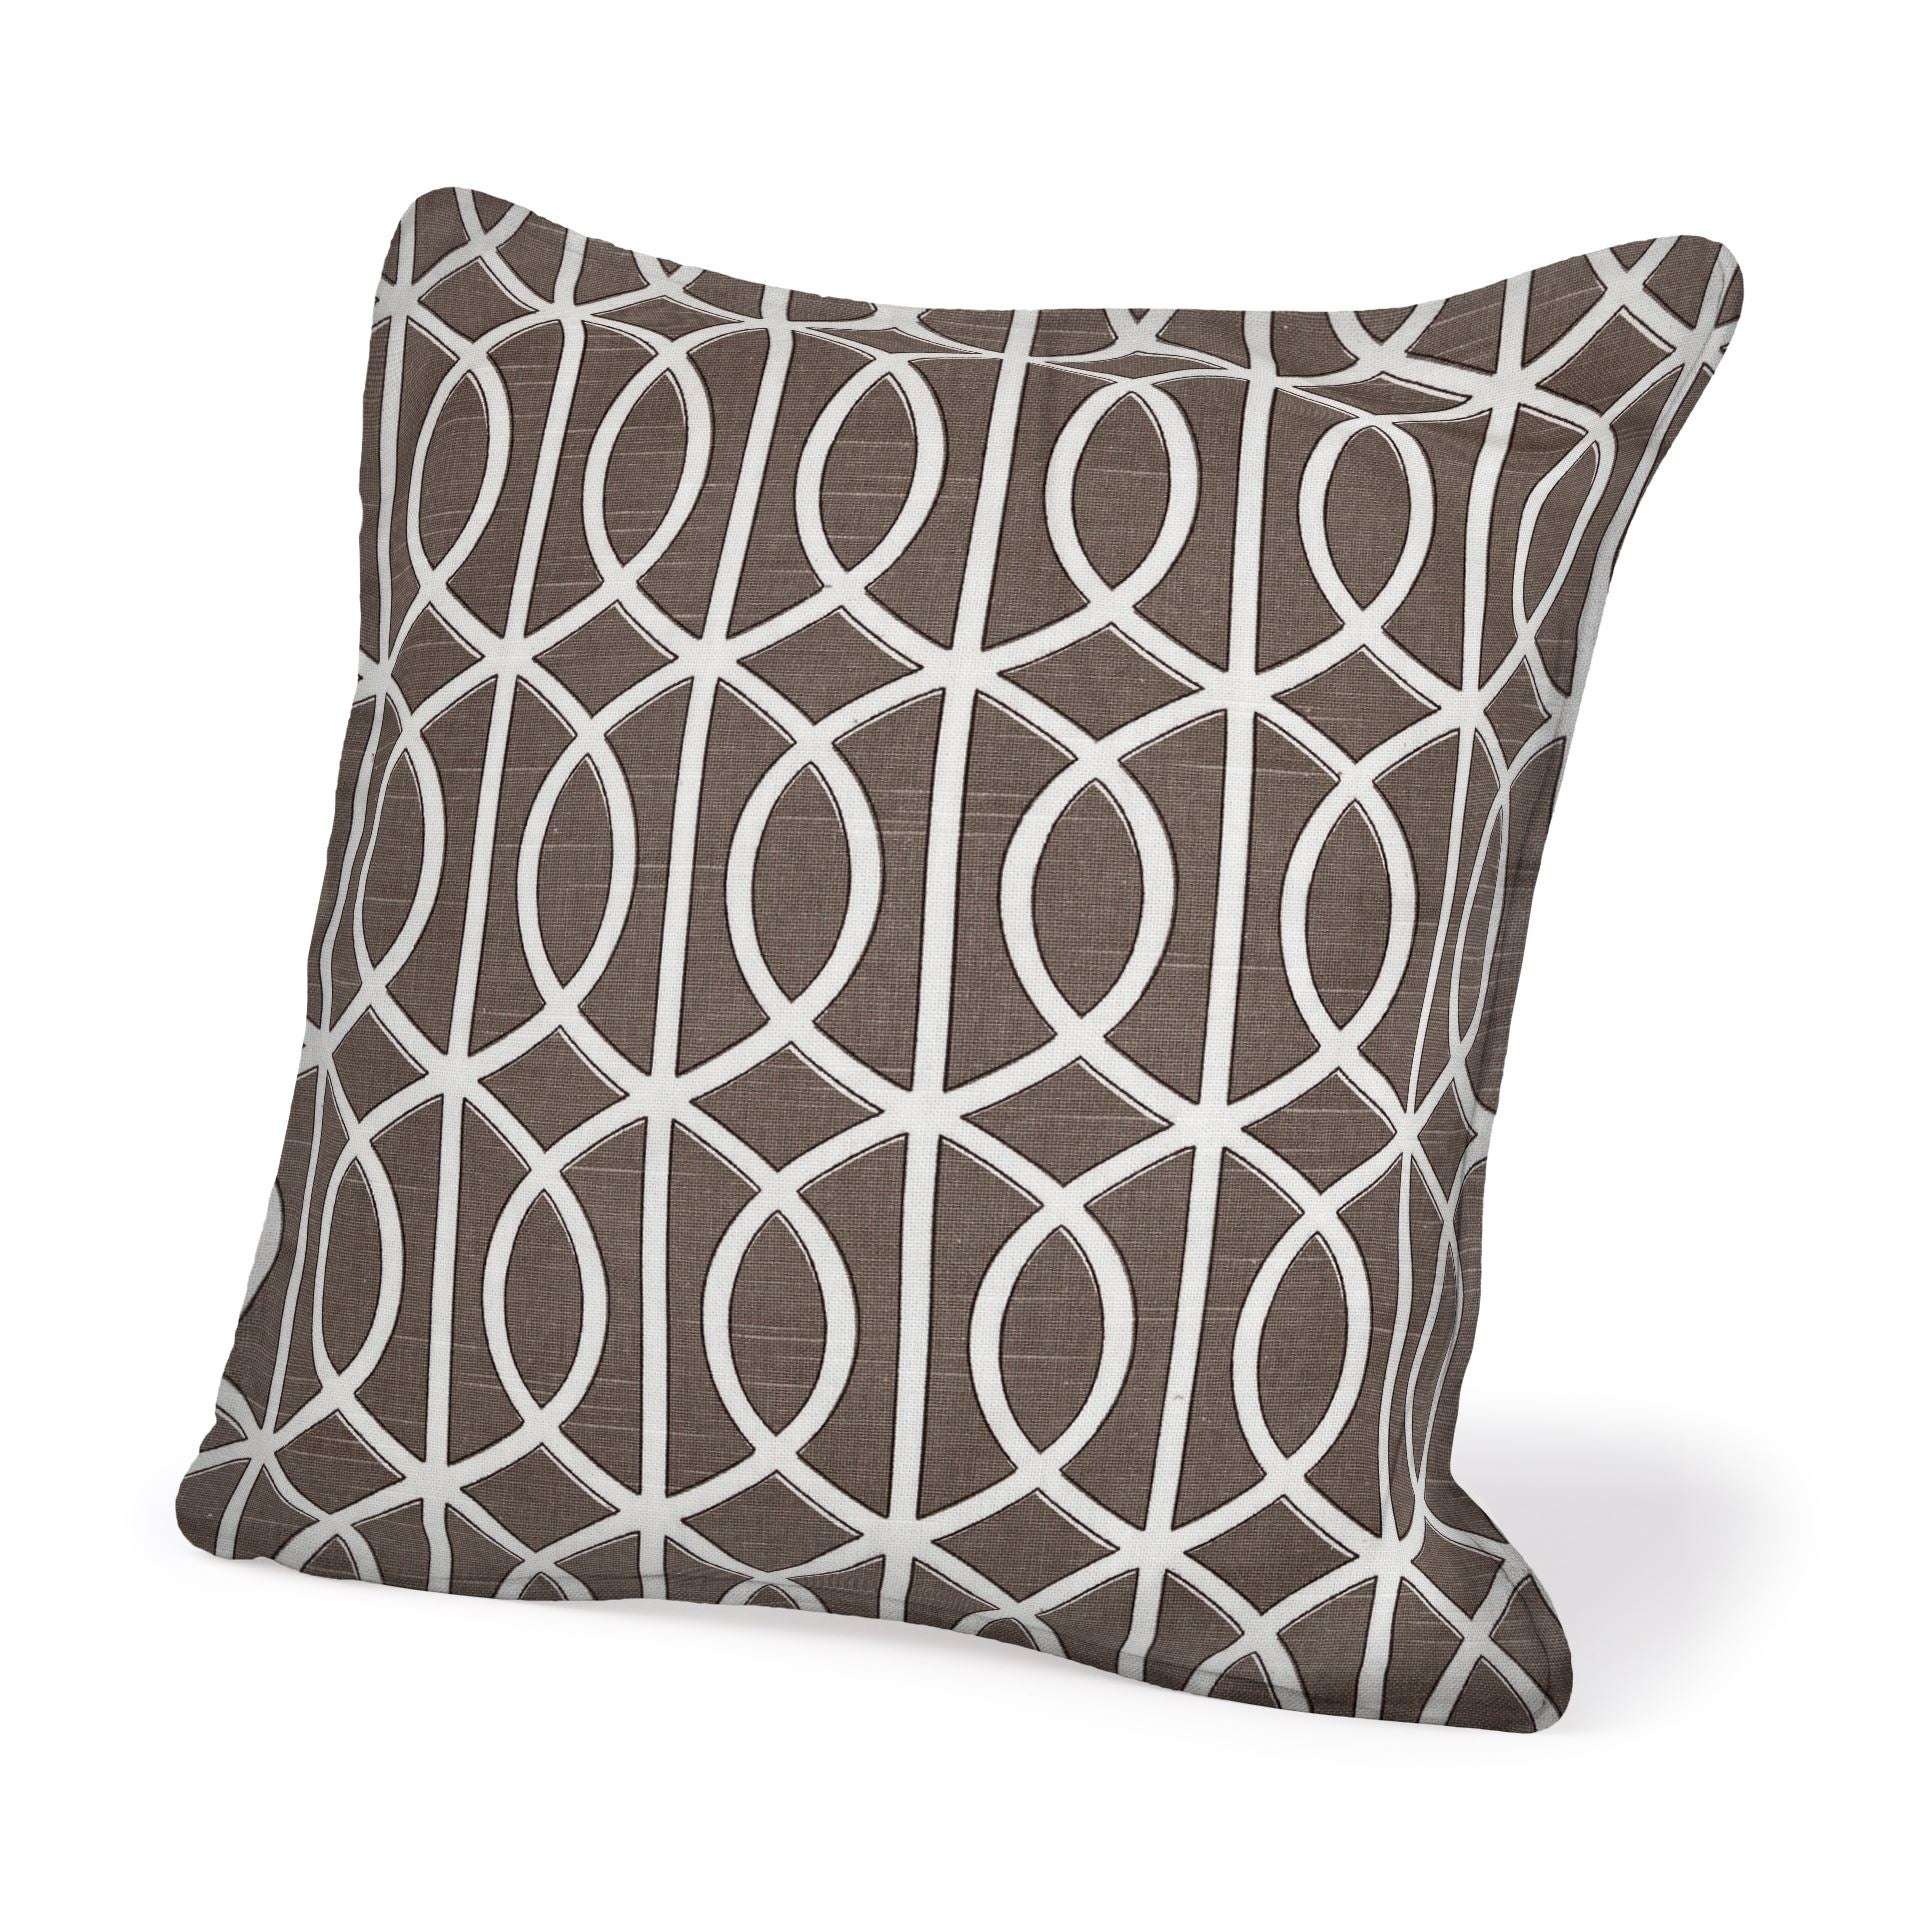 Mercana Heather III 22 x 22 (cover only) Decorative Pillow